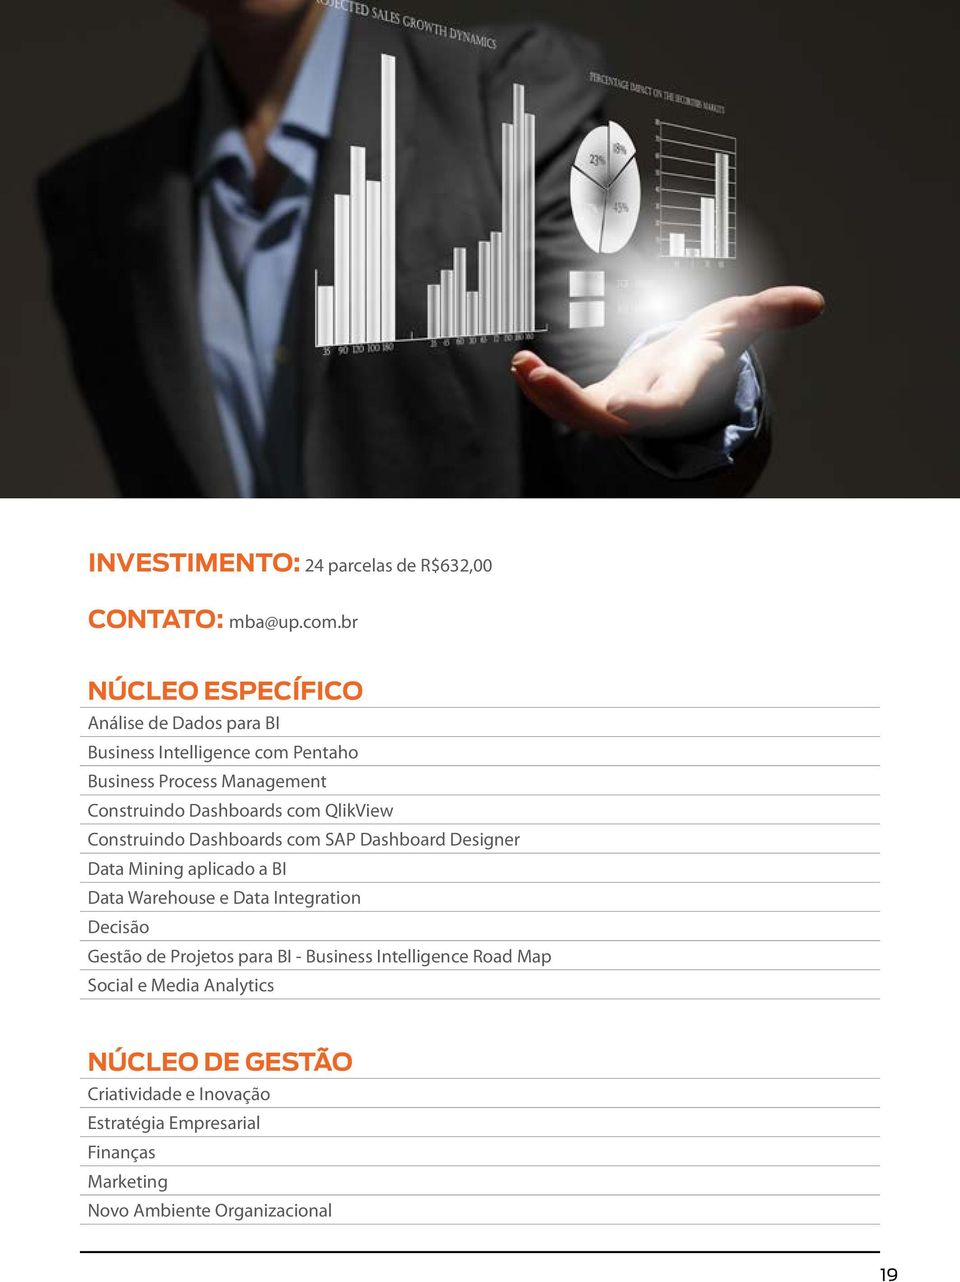 Dashboards com QlikView Construindo Dashboards com SAP Dashboard Designer Data Mining aplicado a BI Data Warehouse e Data